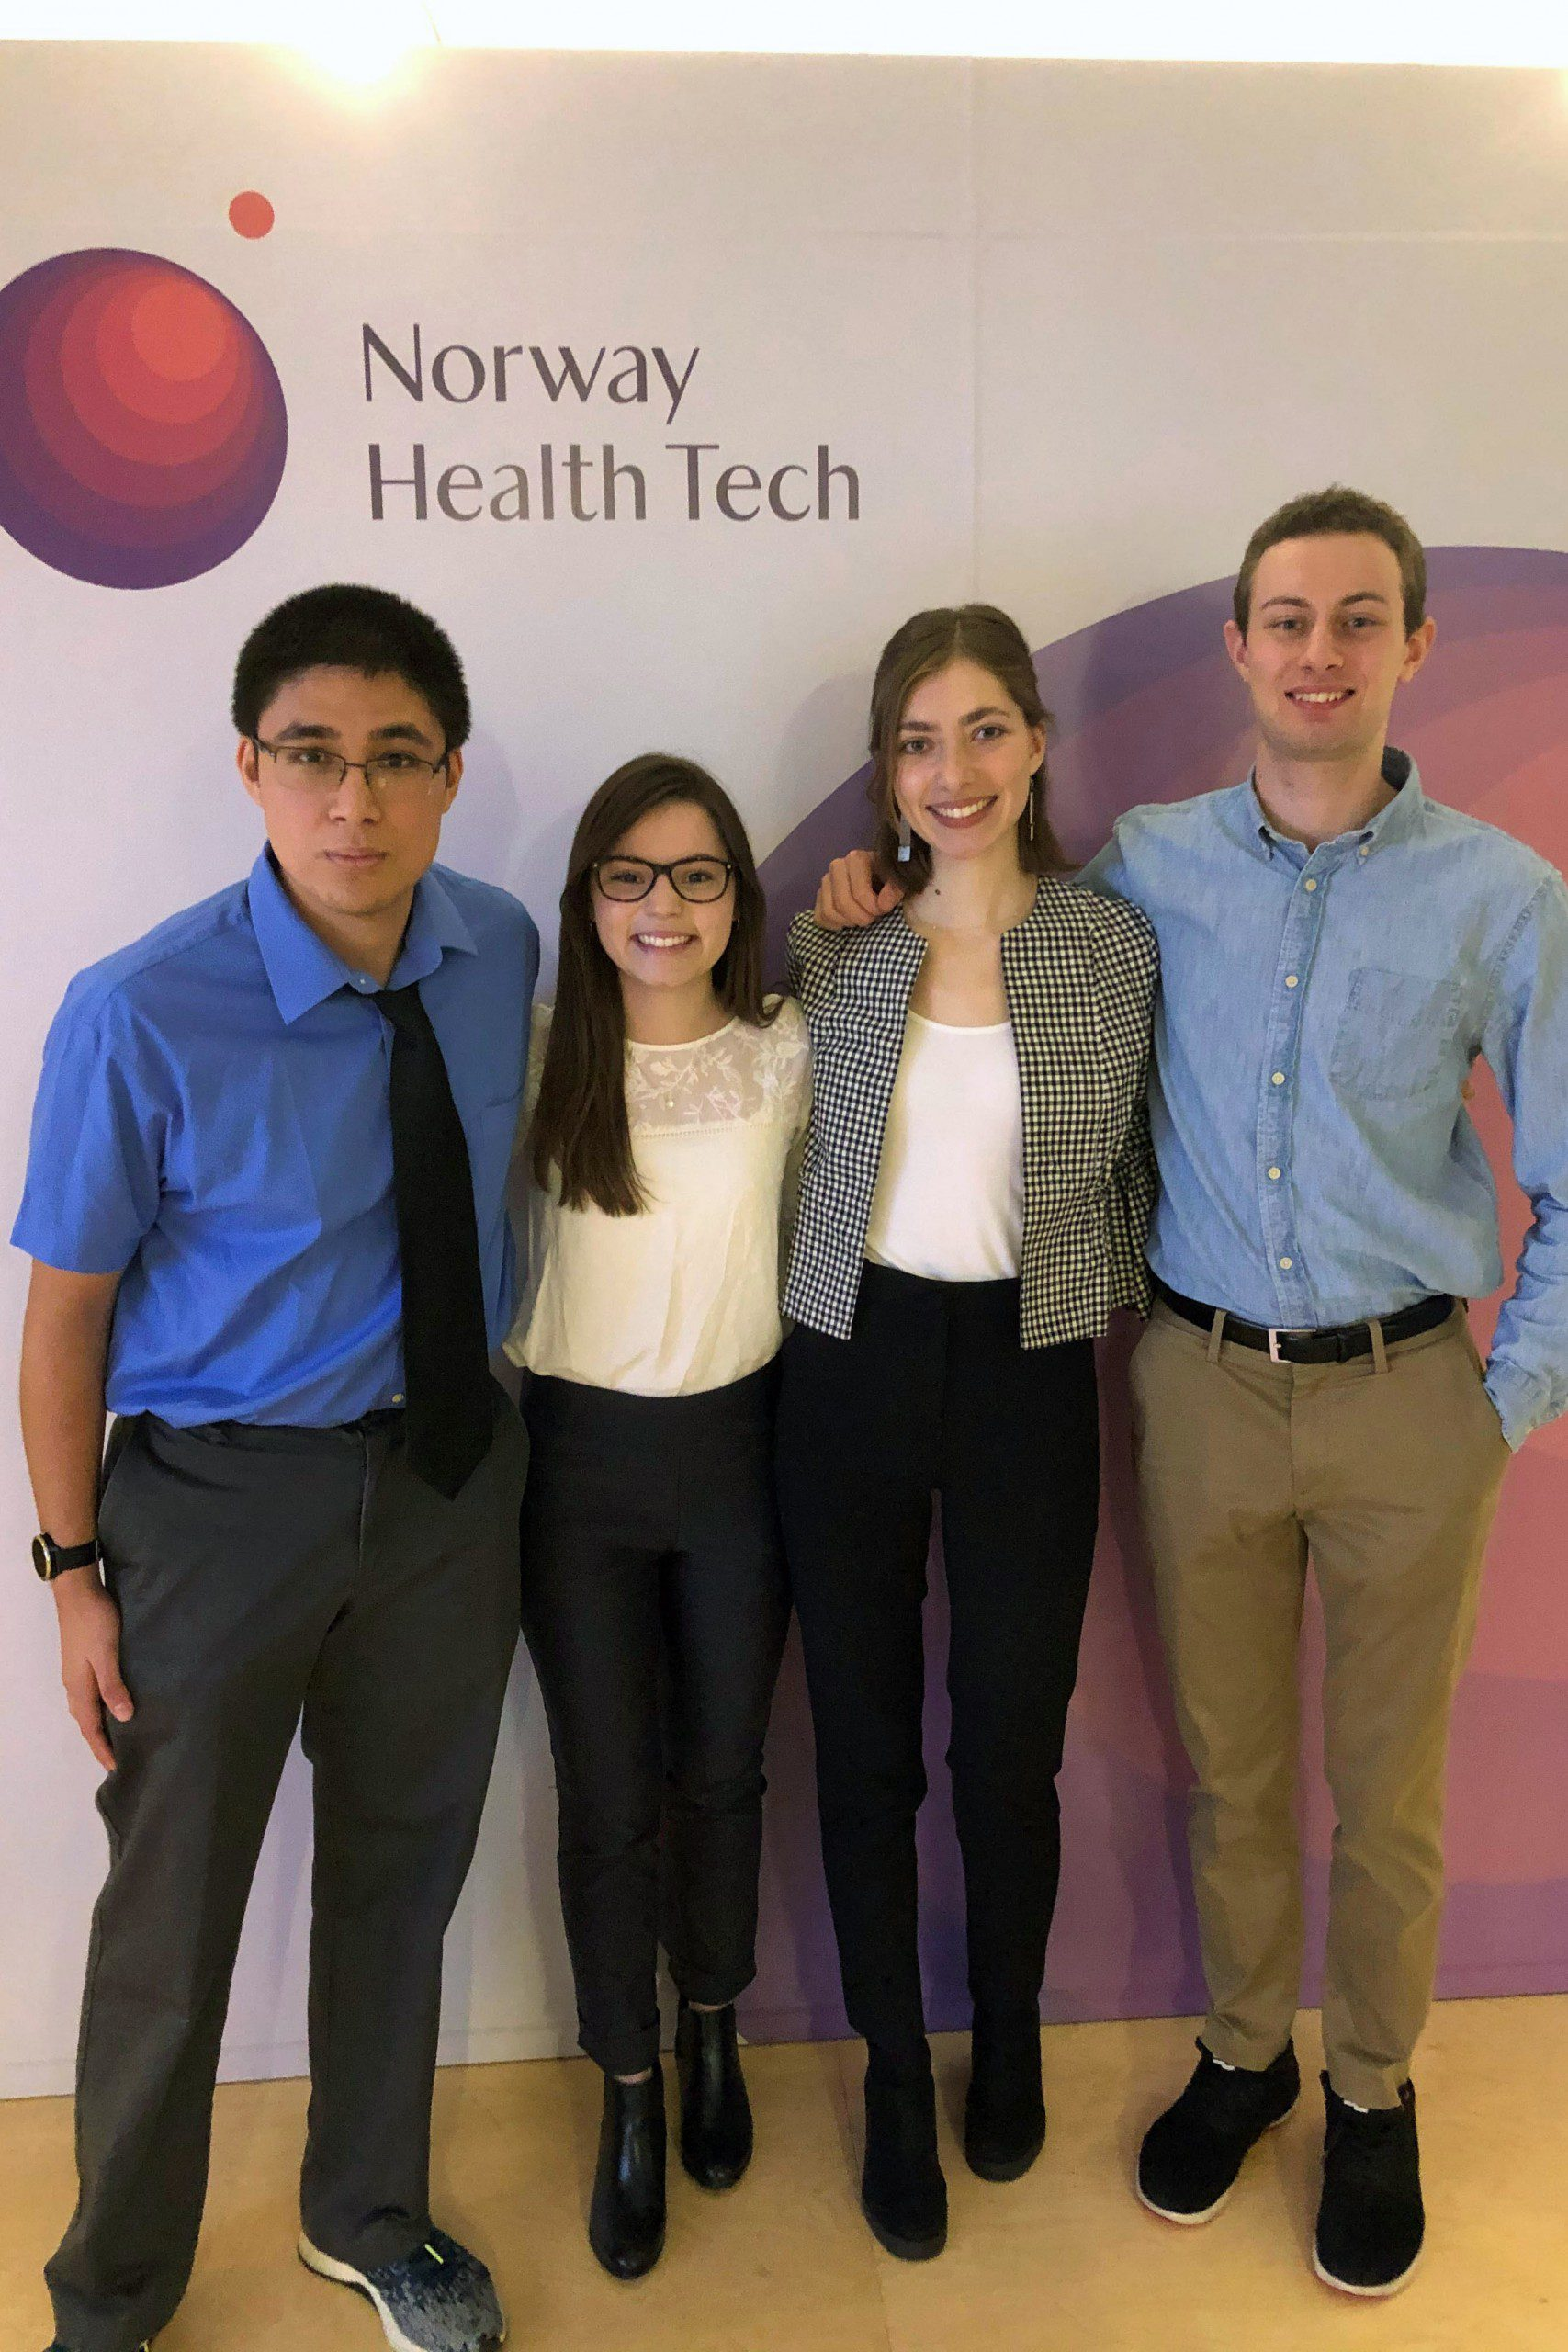 Norway Innovation Scholars stand in front of a wall with the Norway Health Tech logo.